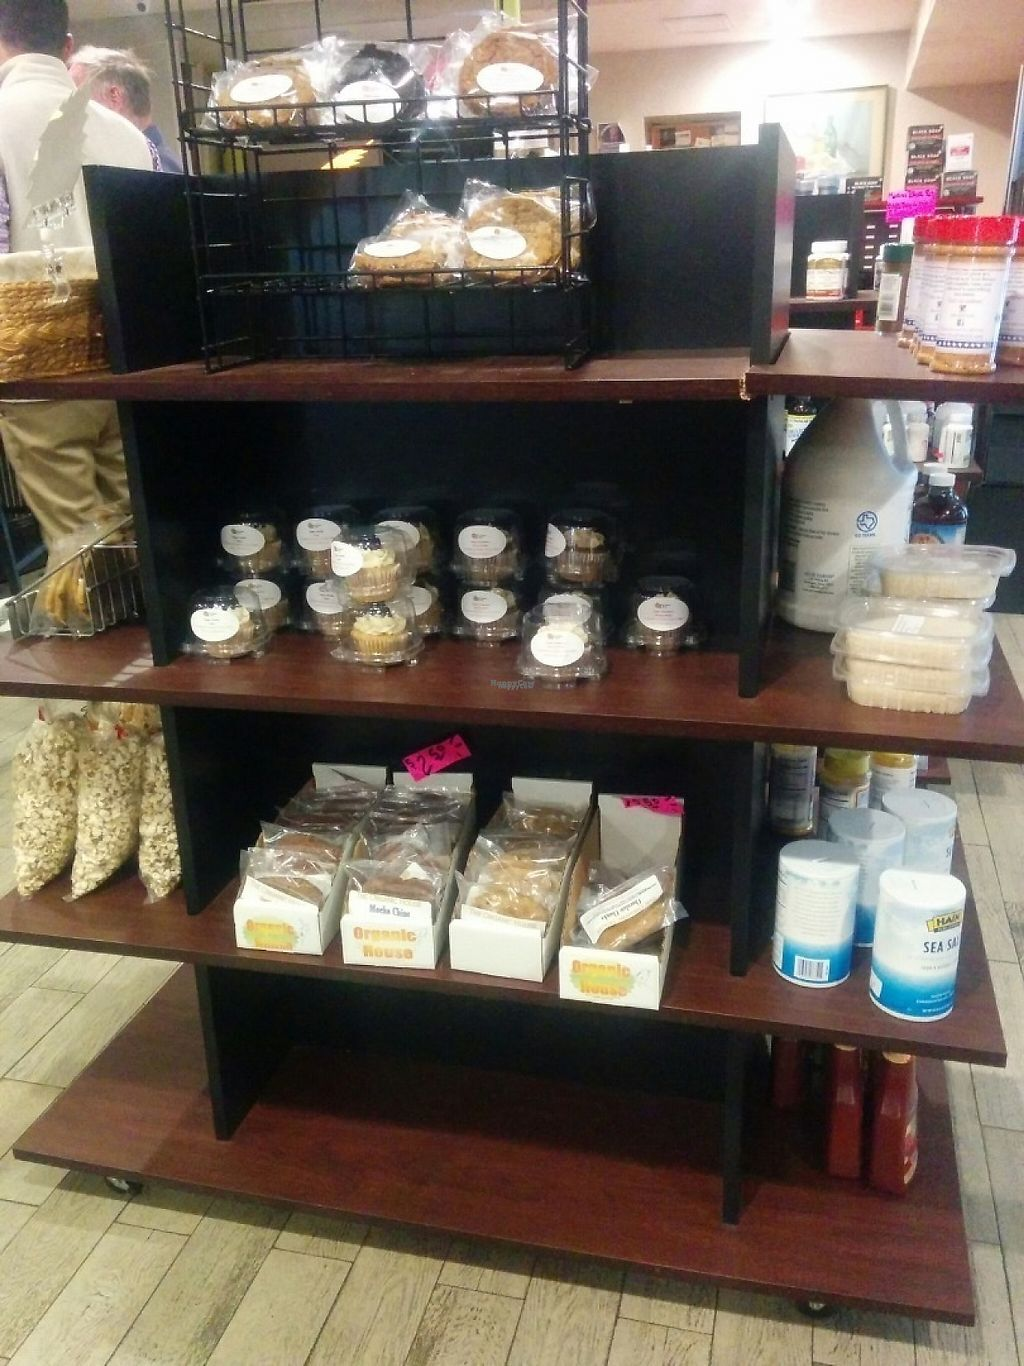 """Photo of Sunshine's Health Food Store and Vegetarian Deli  by <a href=""""/members/profile/MizzB"""">MizzB</a> <br/>Packaged goods, all vegan <br/> January 28, 2017  - <a href='/contact/abuse/image/12137/218476'>Report</a>"""